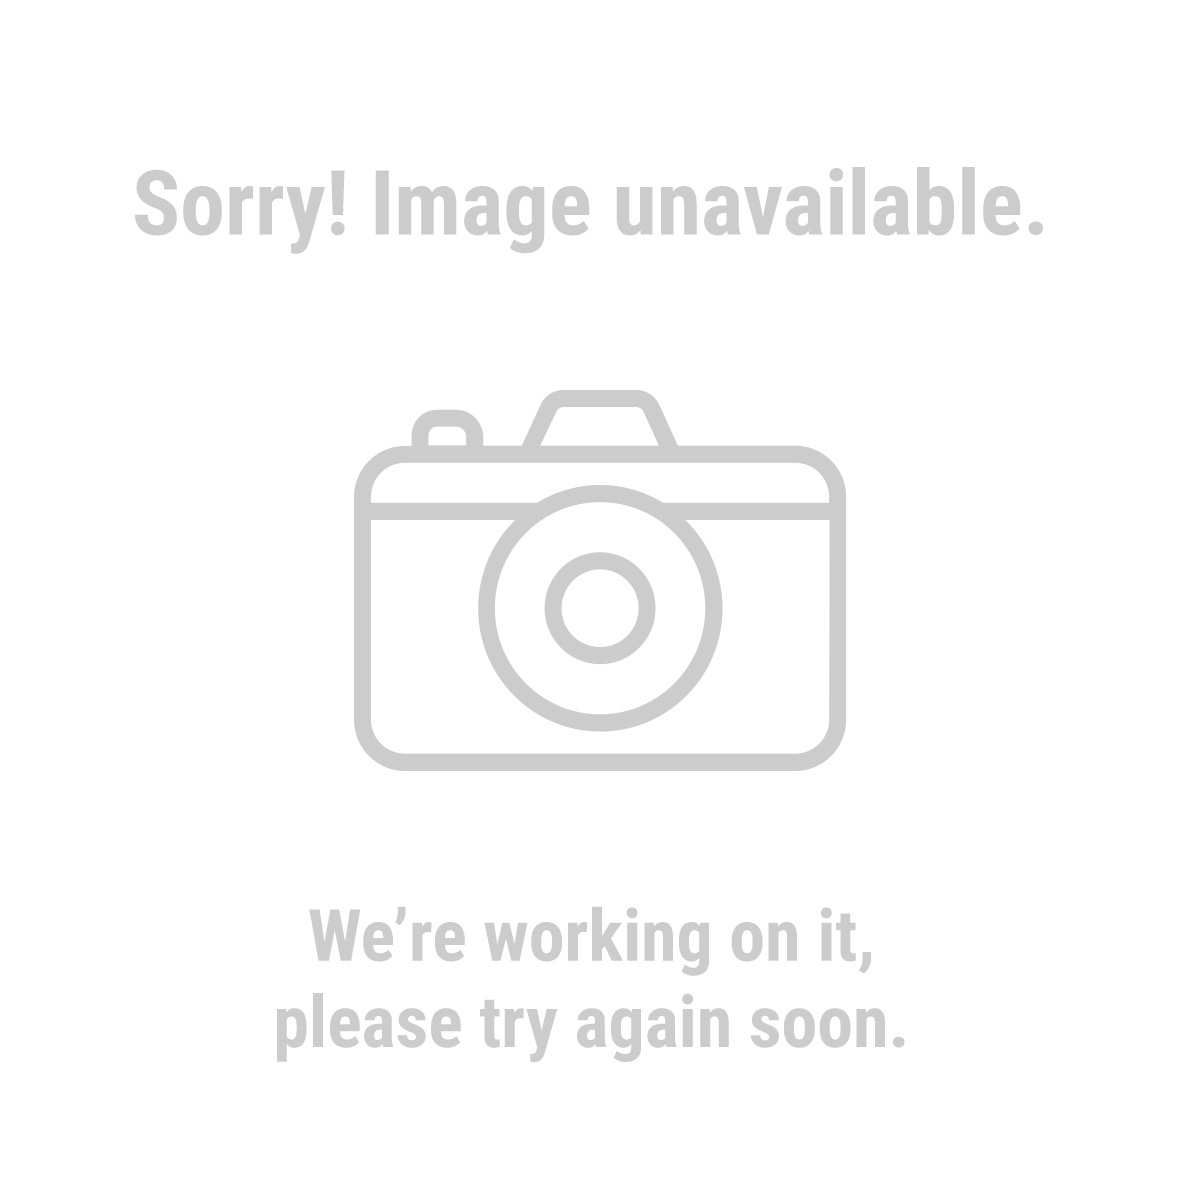 Pittsburgh 93668 15 Piece Metric Service Wrench Set